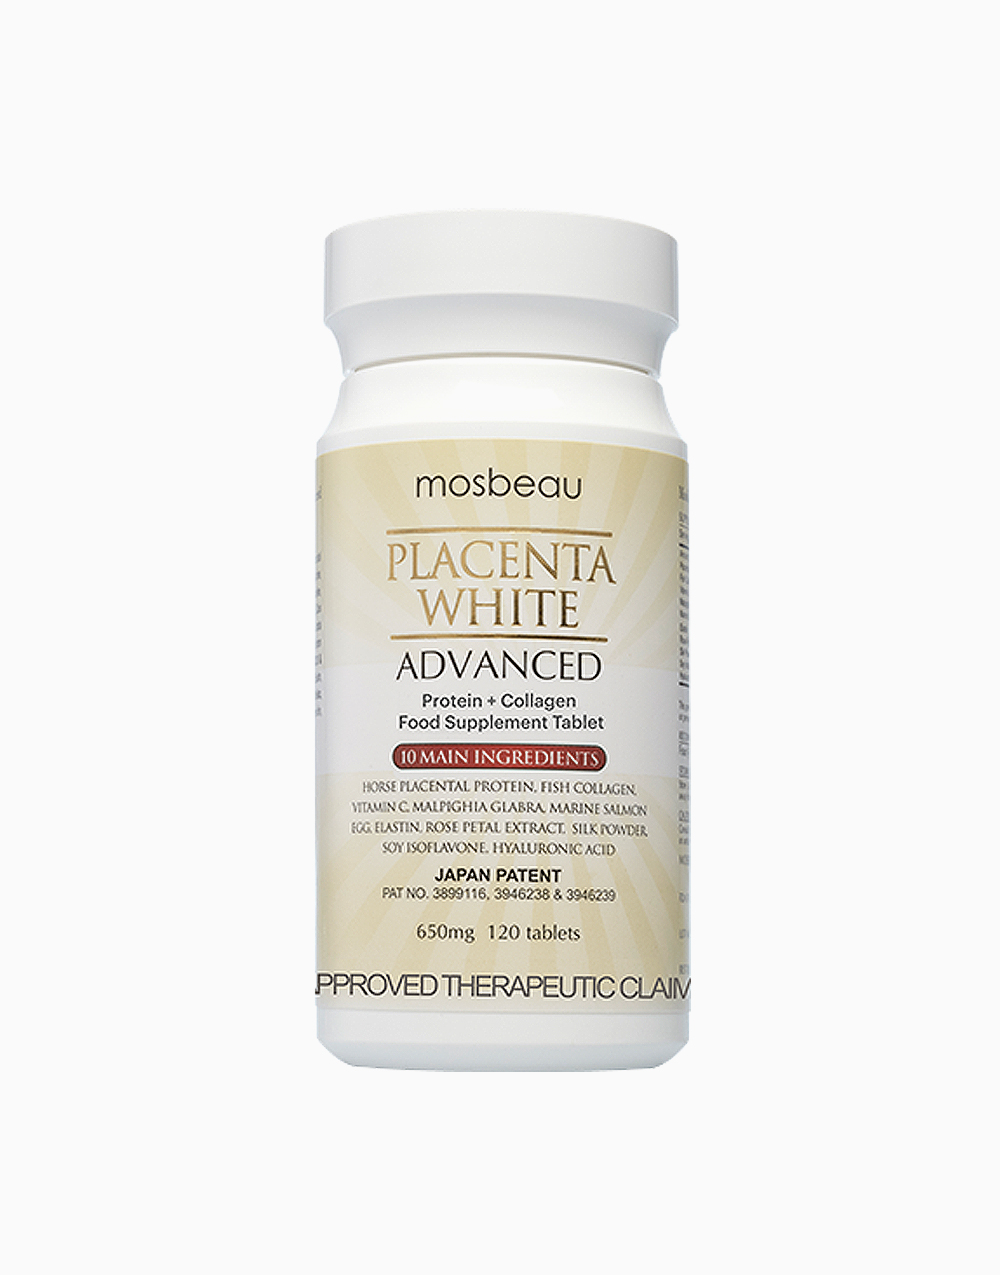 Placenta White Advanced Supplement (120s) by Mosbeau